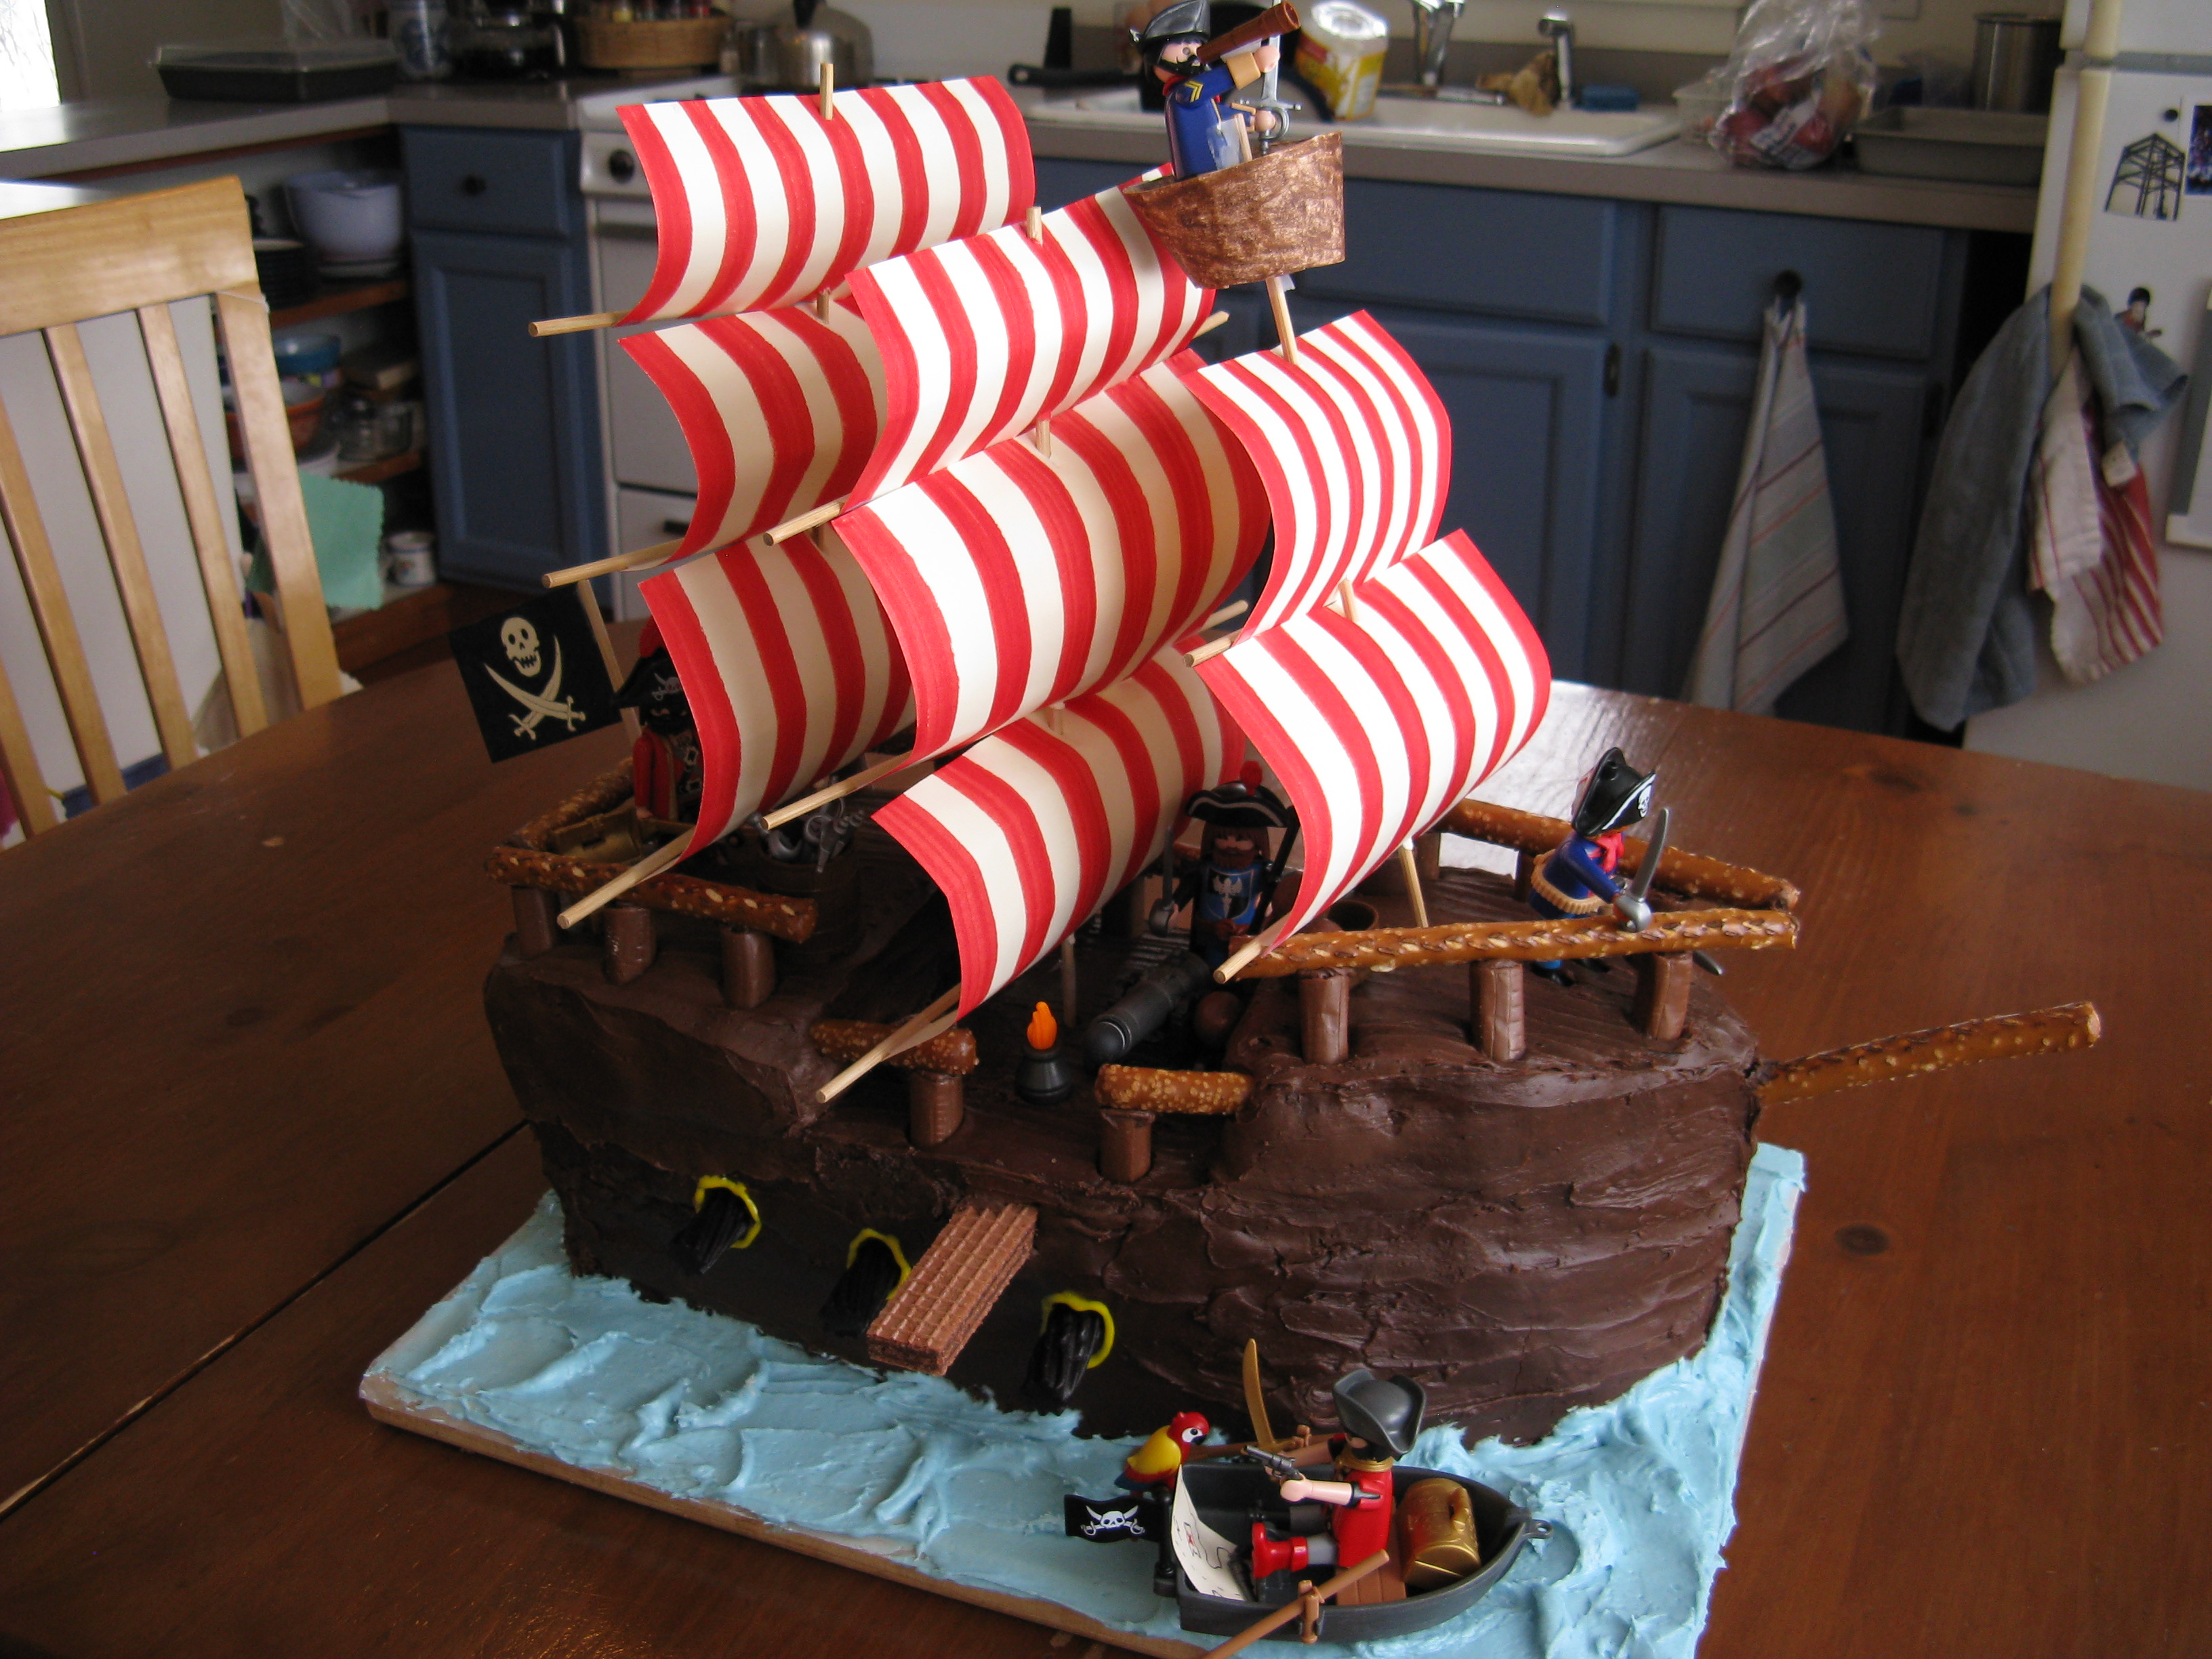 The Pirate Ship Cake Is Exciting To Make But